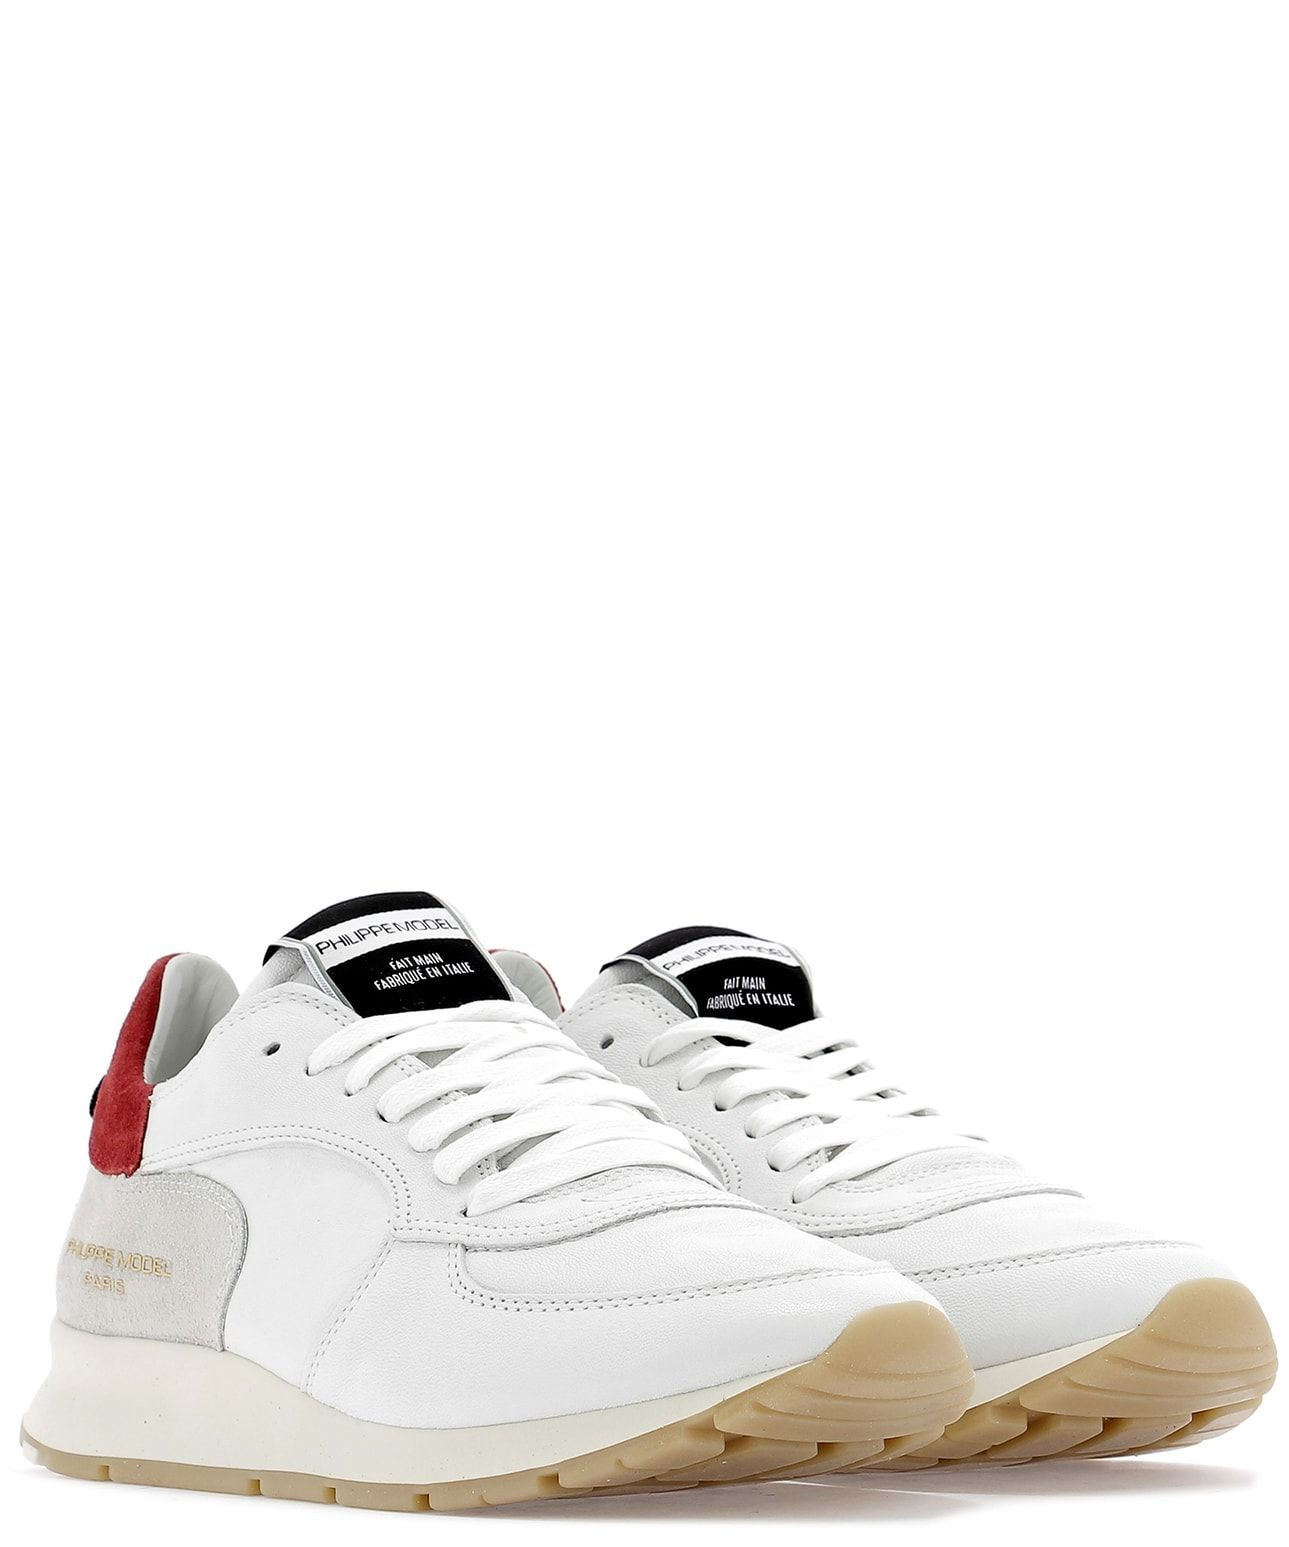 PHILIPPE MODEL WOMEN'S NTLDWW11 WHITE LEATHER SNEAKERS